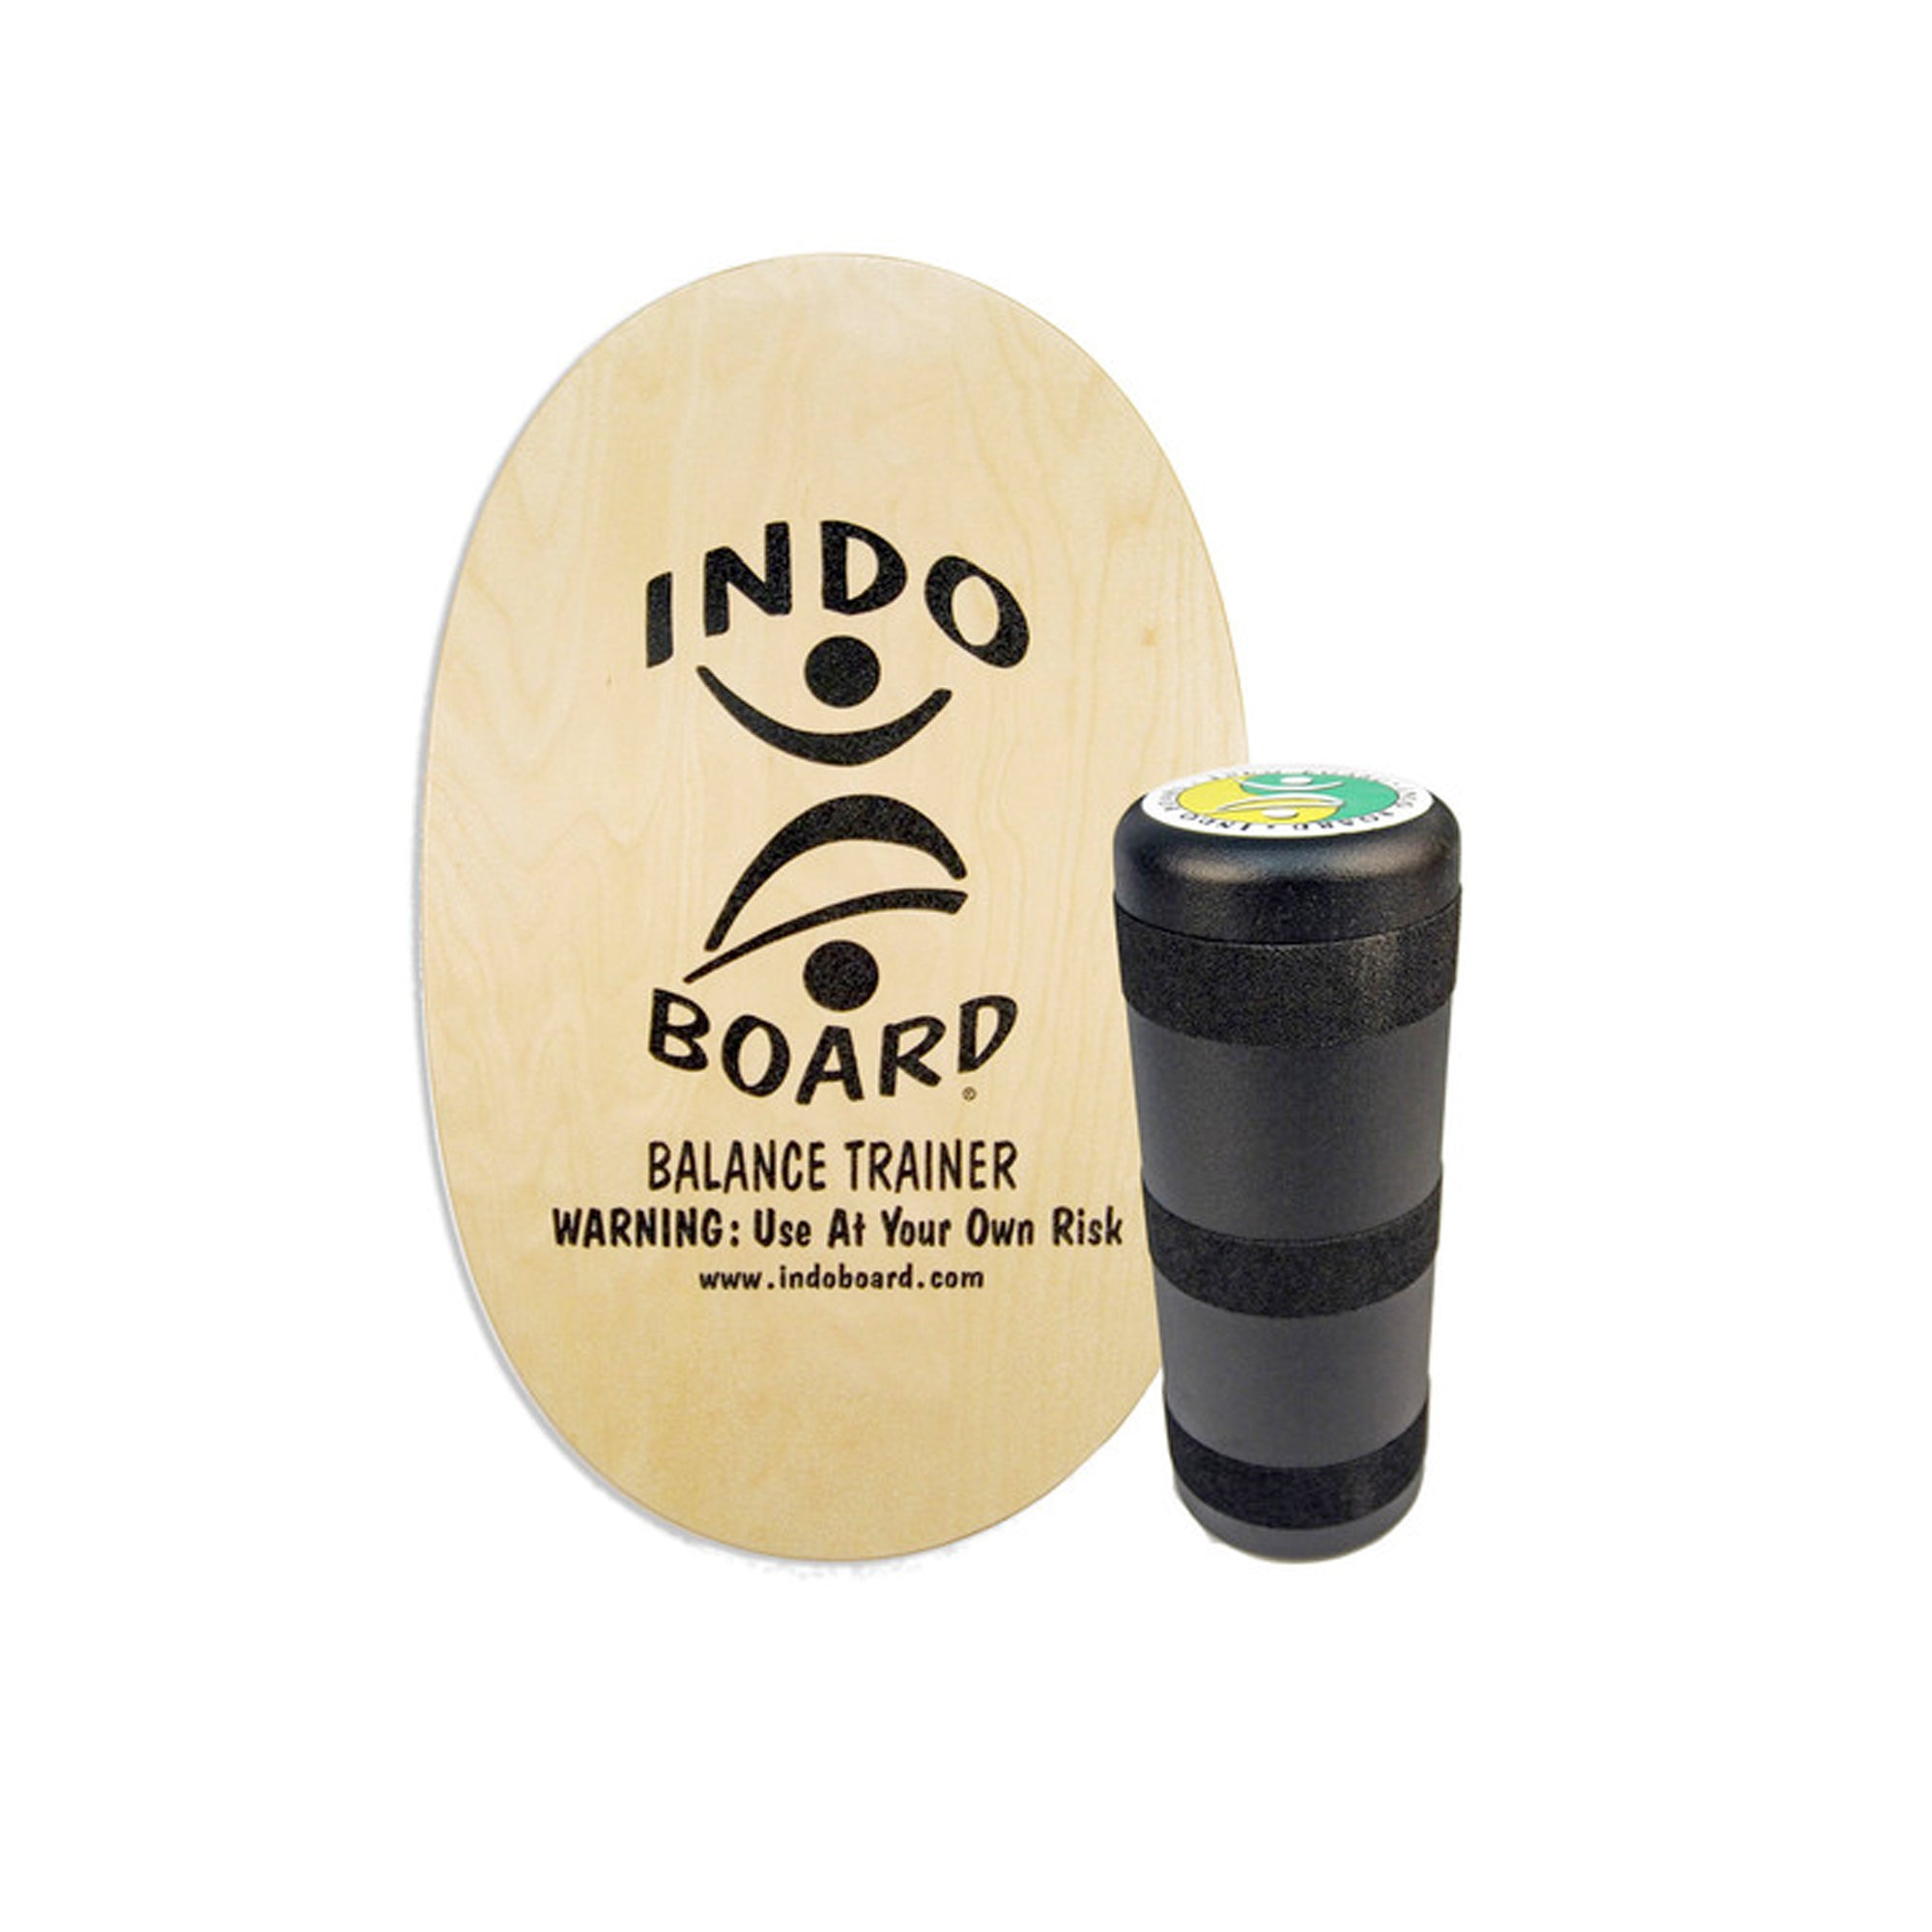 Indo Board Original Deck and Roller Kit - Natural